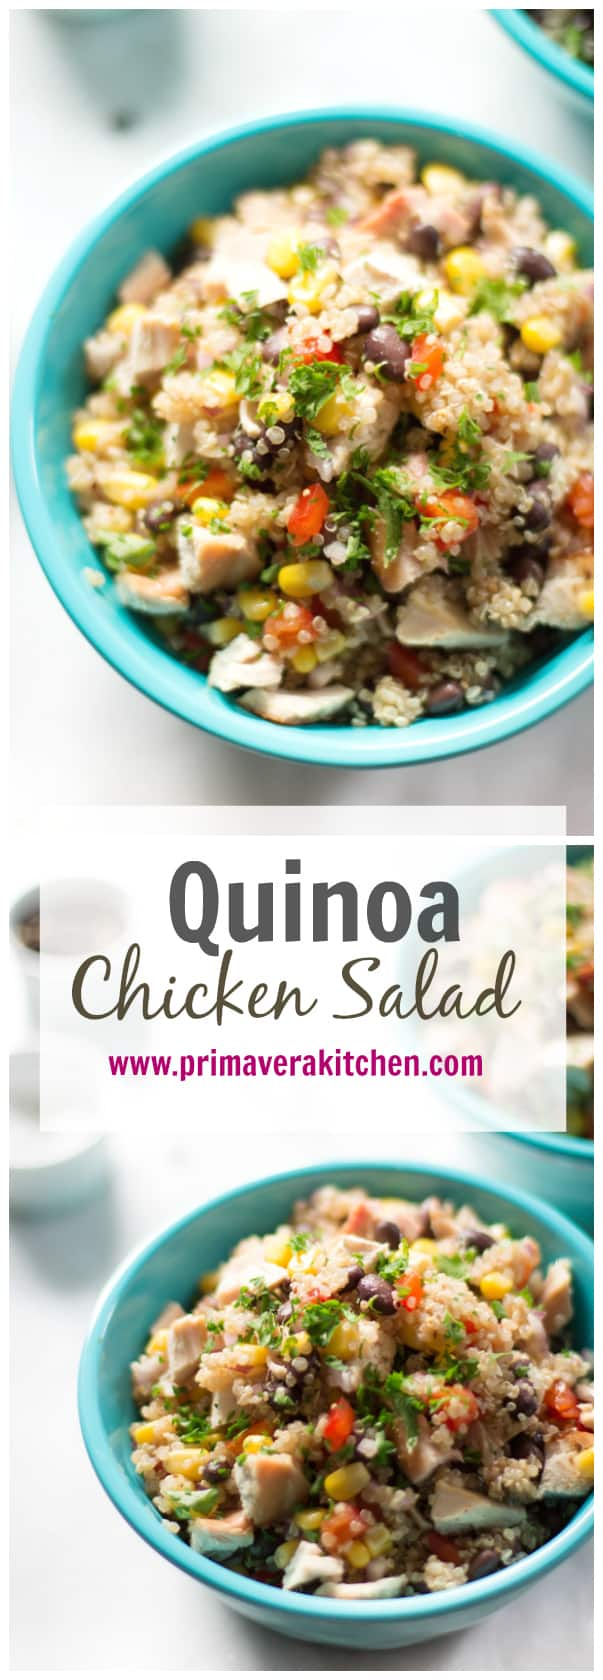 Quinoa chicken salad makes a quick and easy side or main you can serve hot or cold. Delicious and packed full of good-for-you ingredients too!